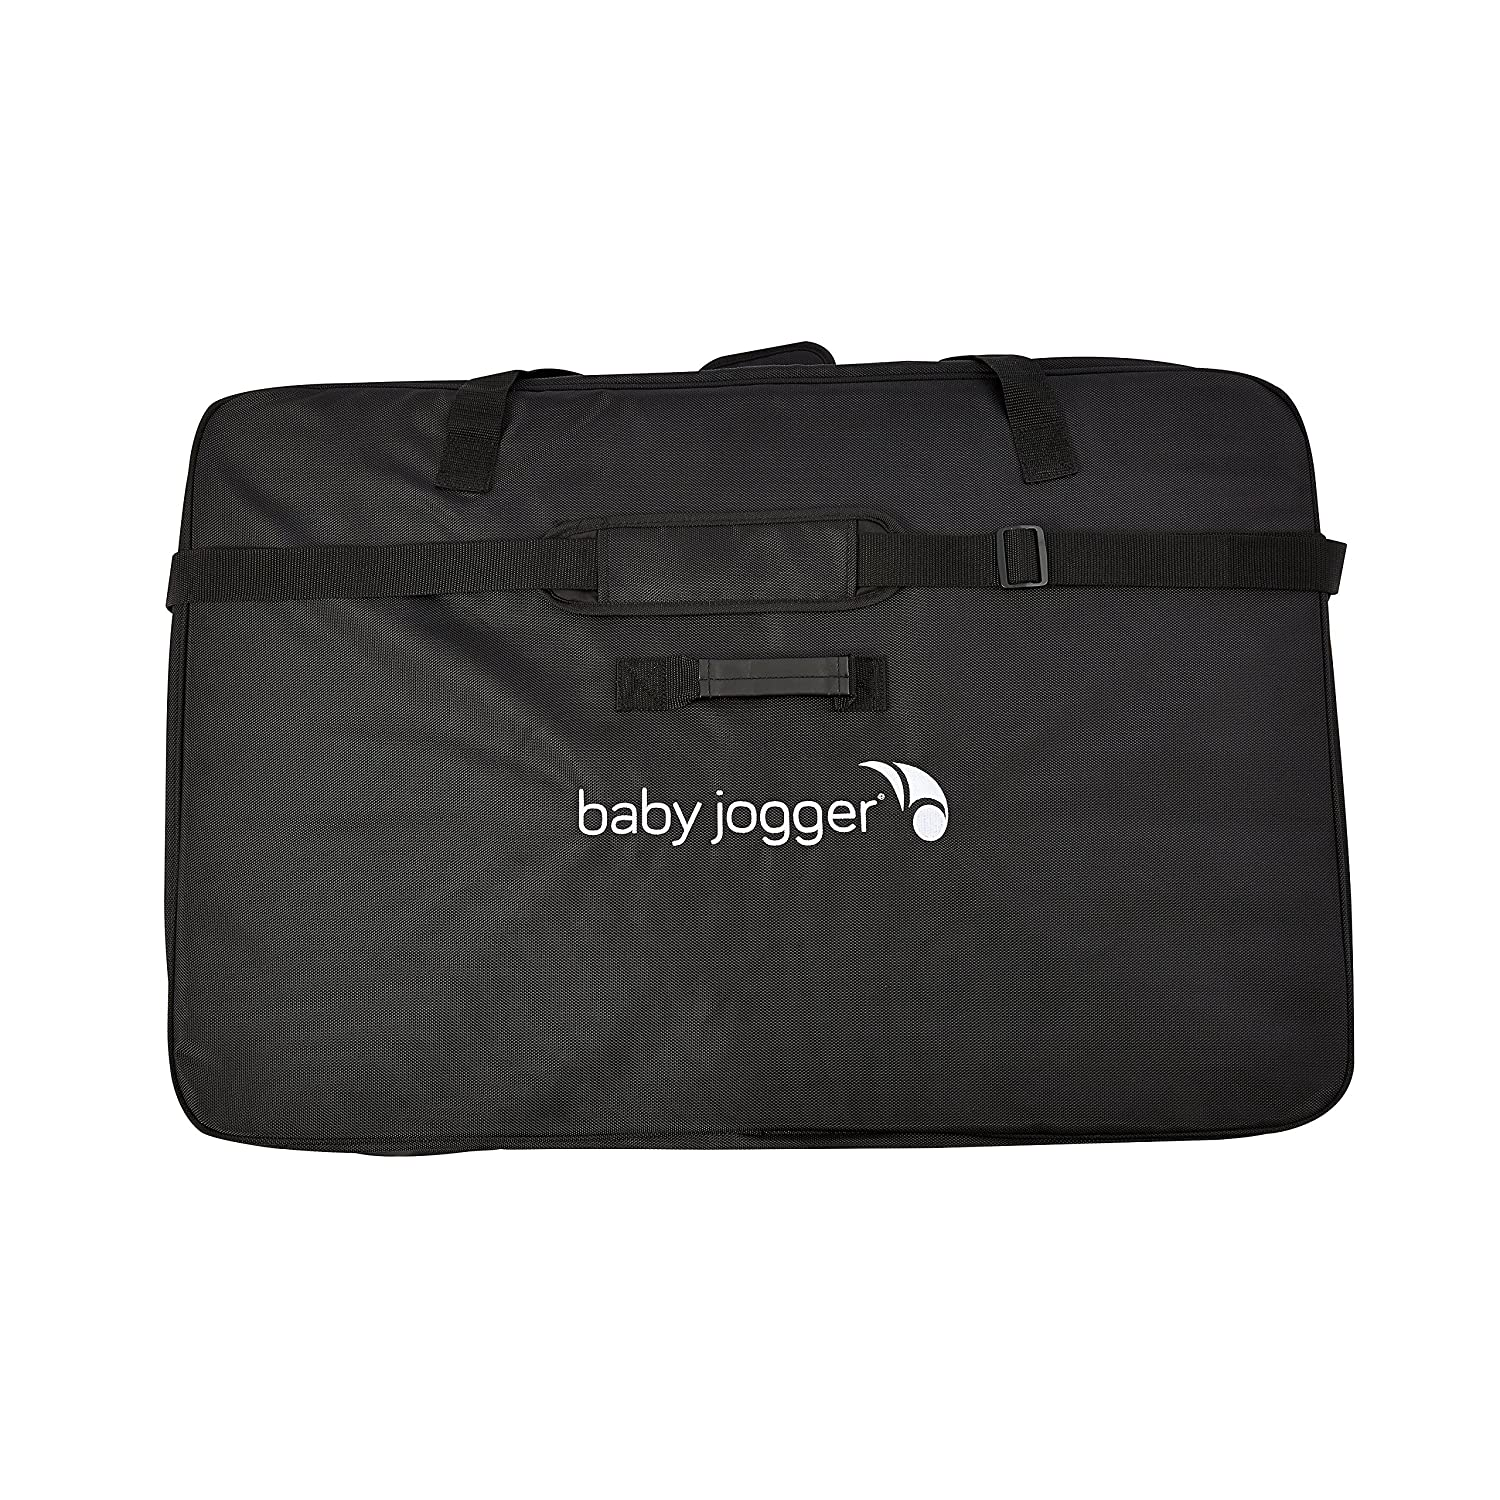 Baby Jogger Carry Bag for Select Stroller, Black BJ91508